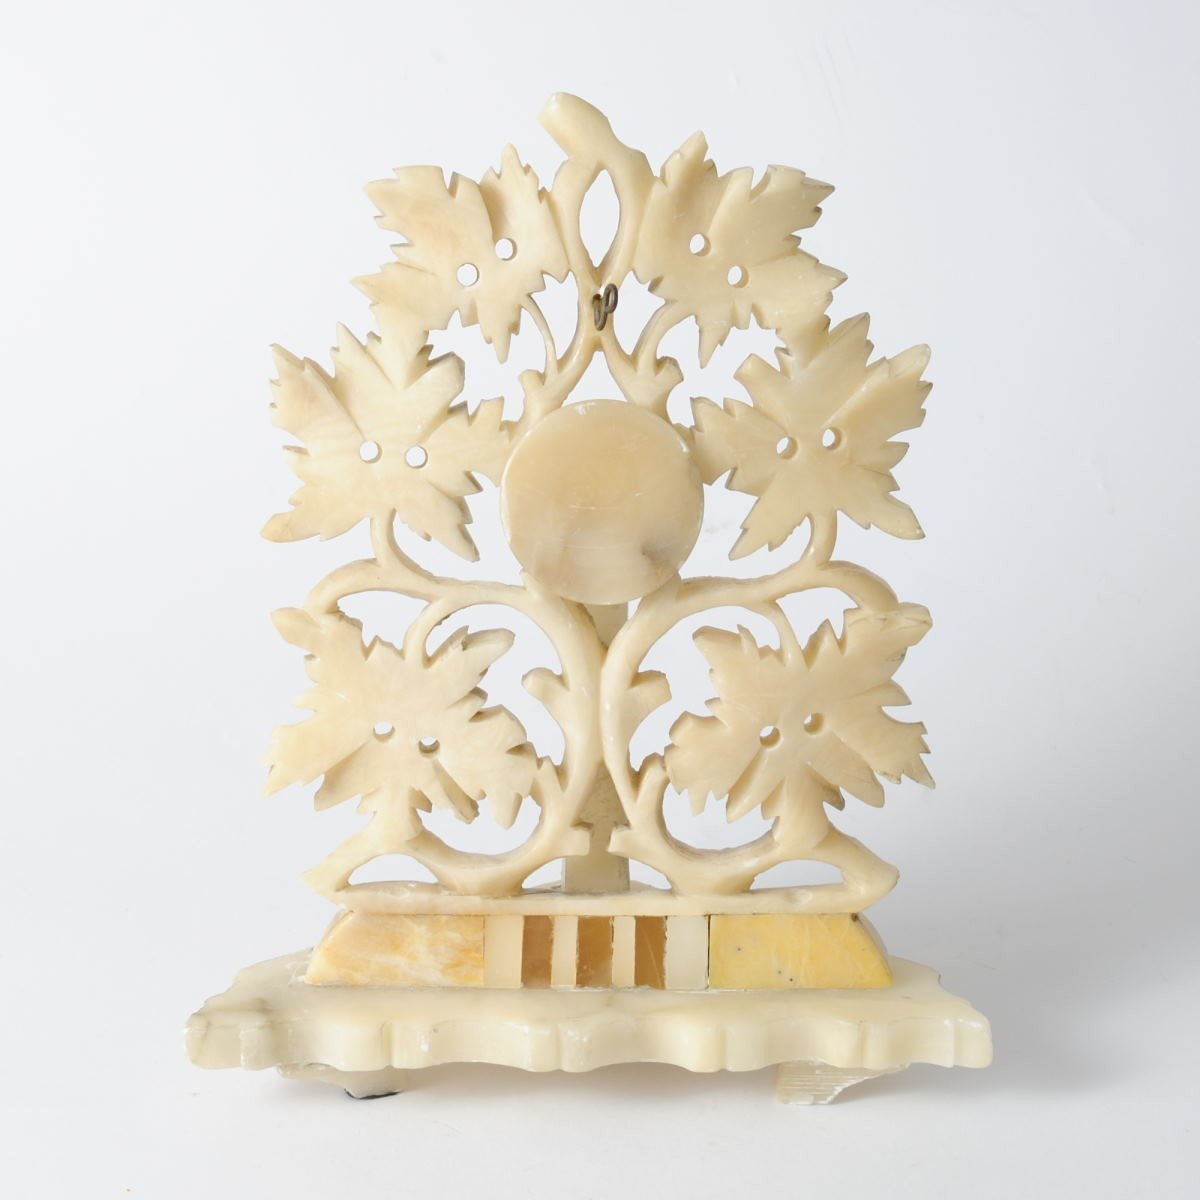 Watch Stand, Italy, 19th C. - 497022 - photo